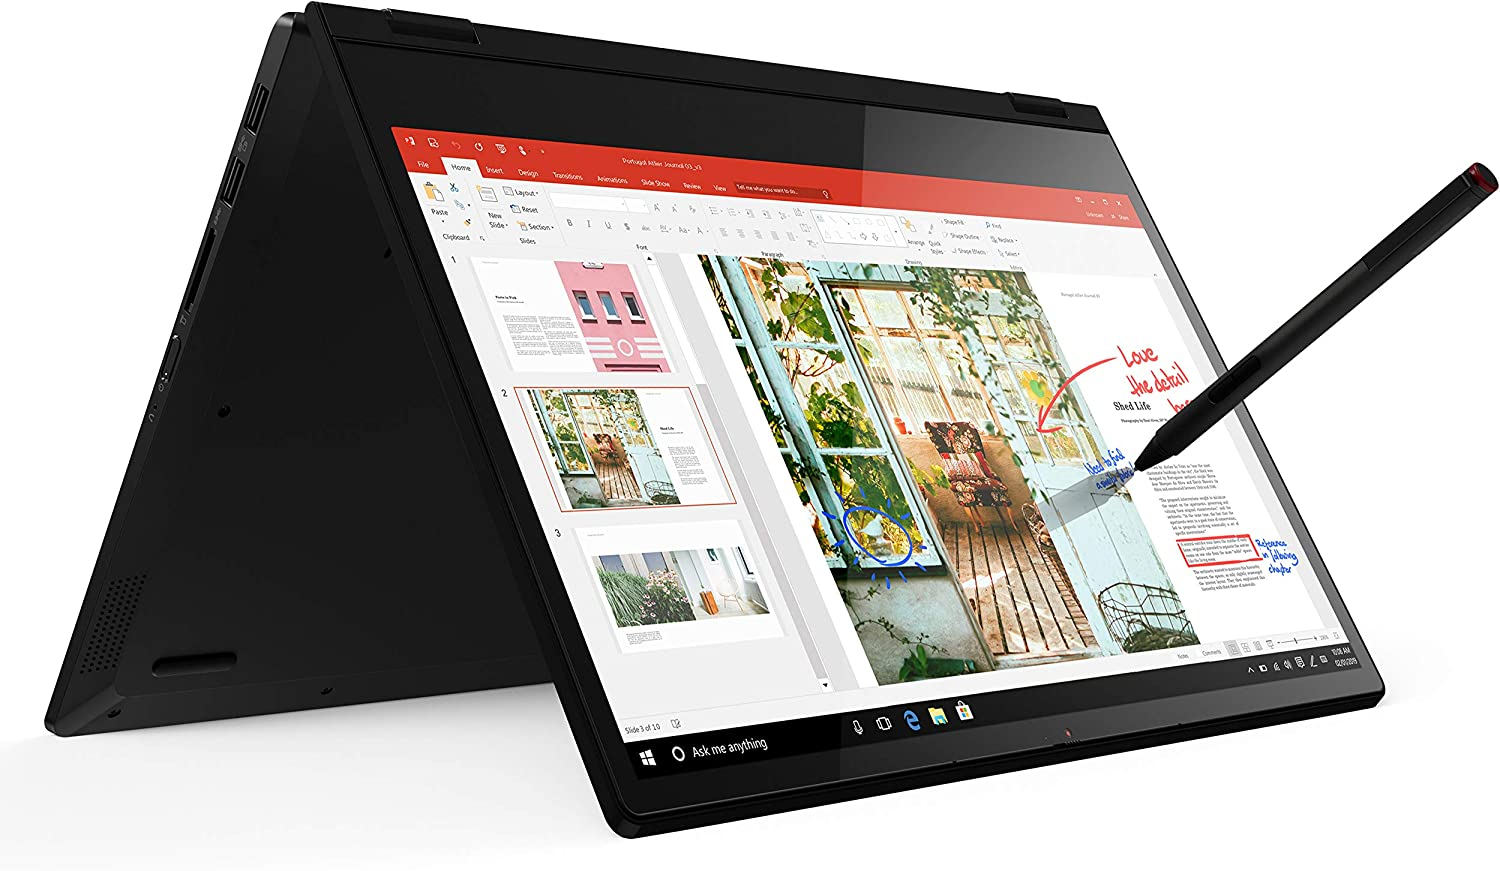 Lenovo best laptops under $600 with ssd